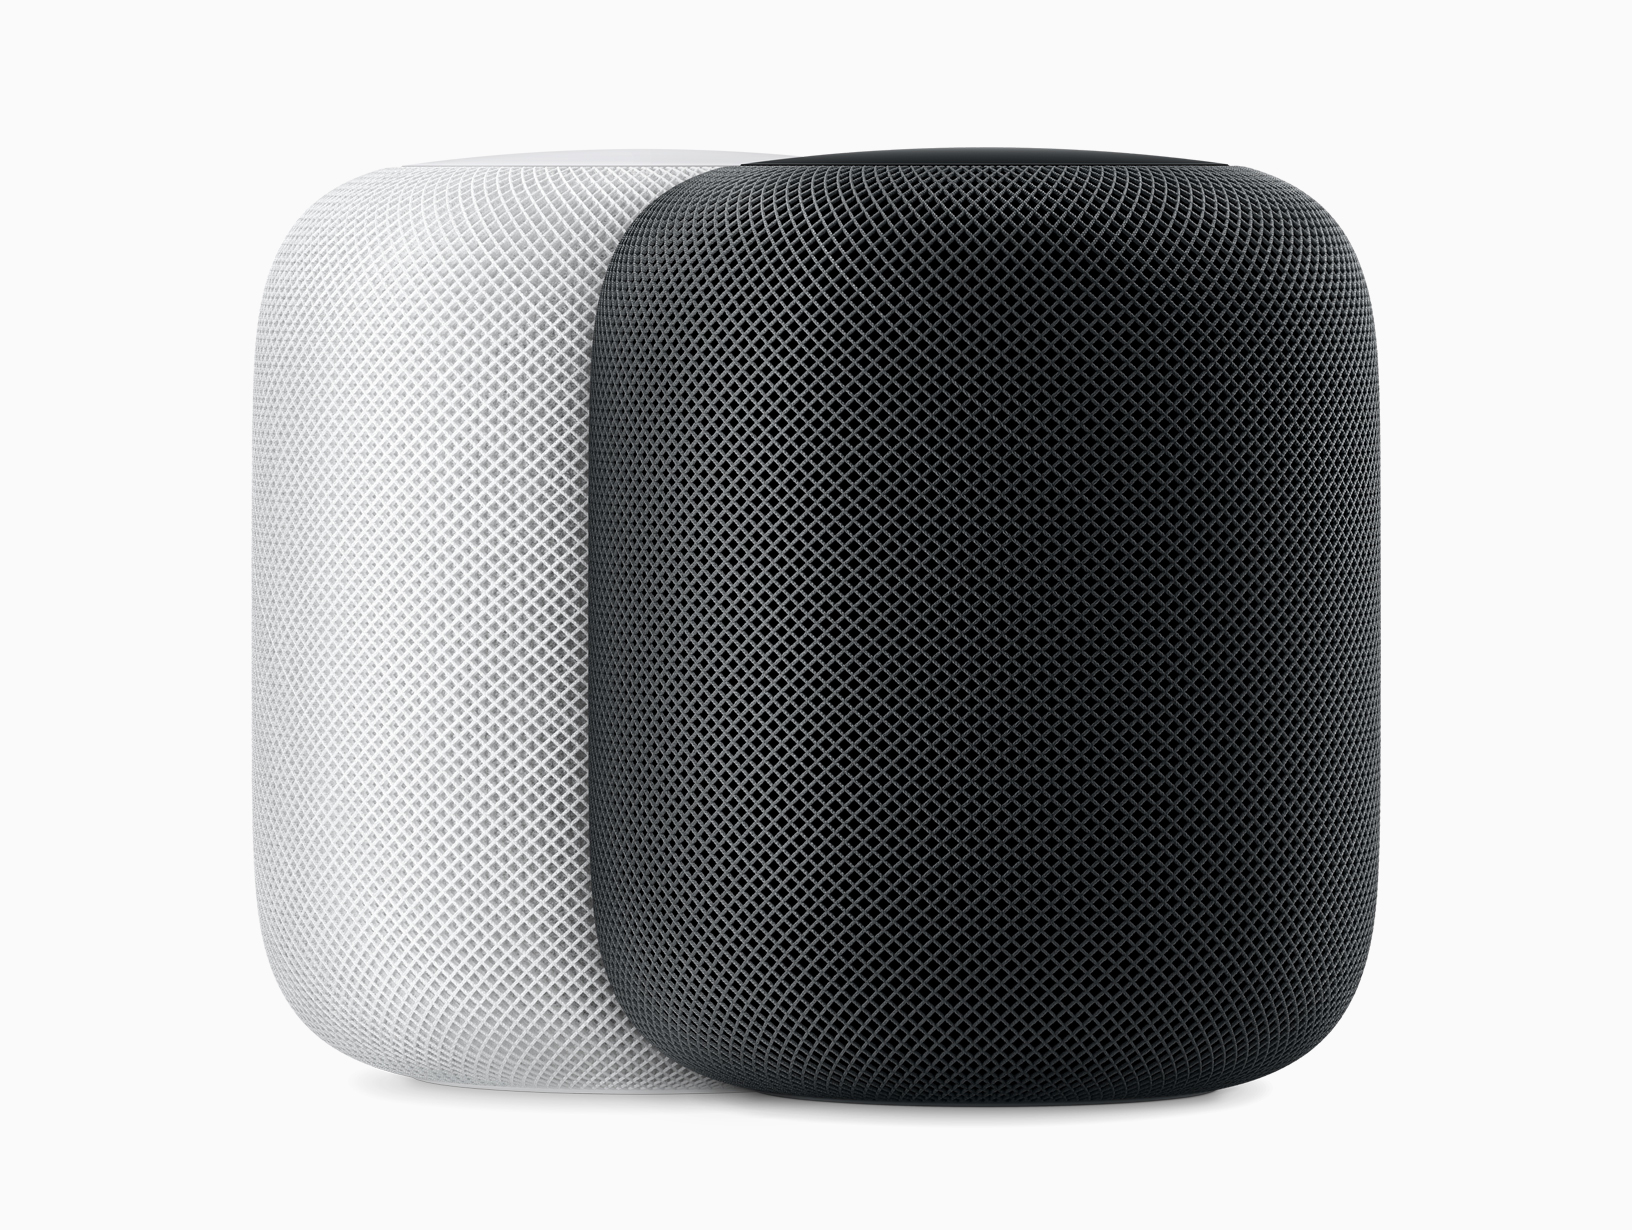 I tried out Apple's new HomePod features. Here's what I learned